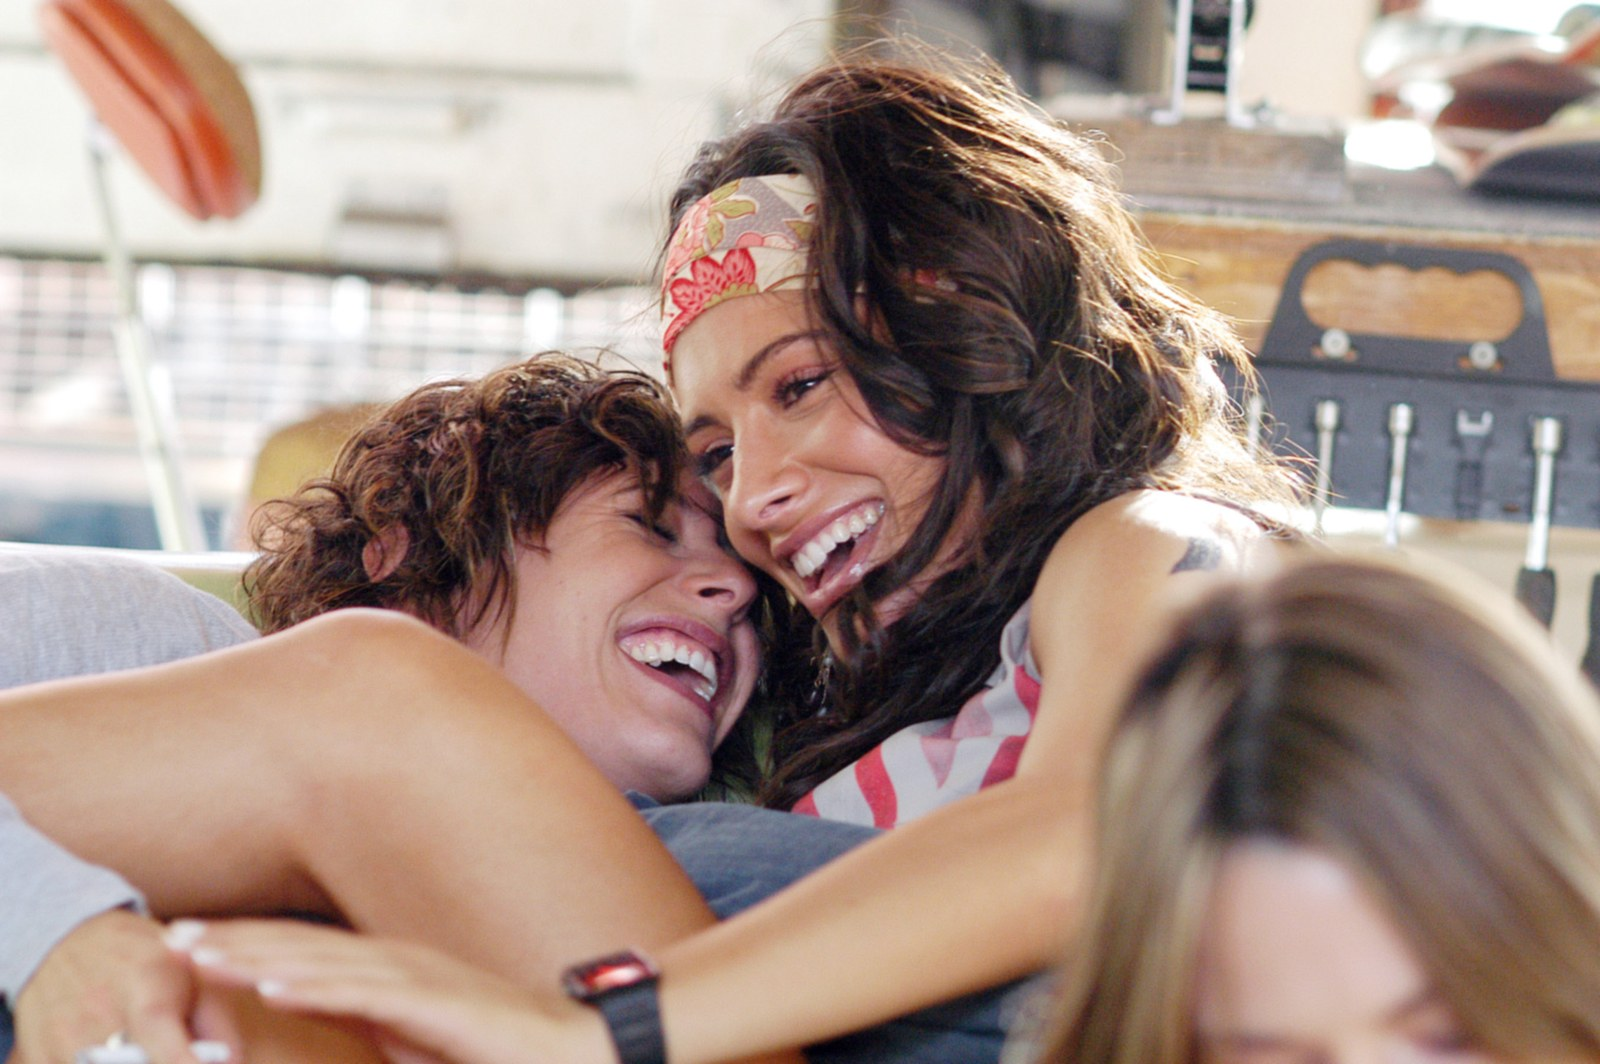 A scene from The L Word